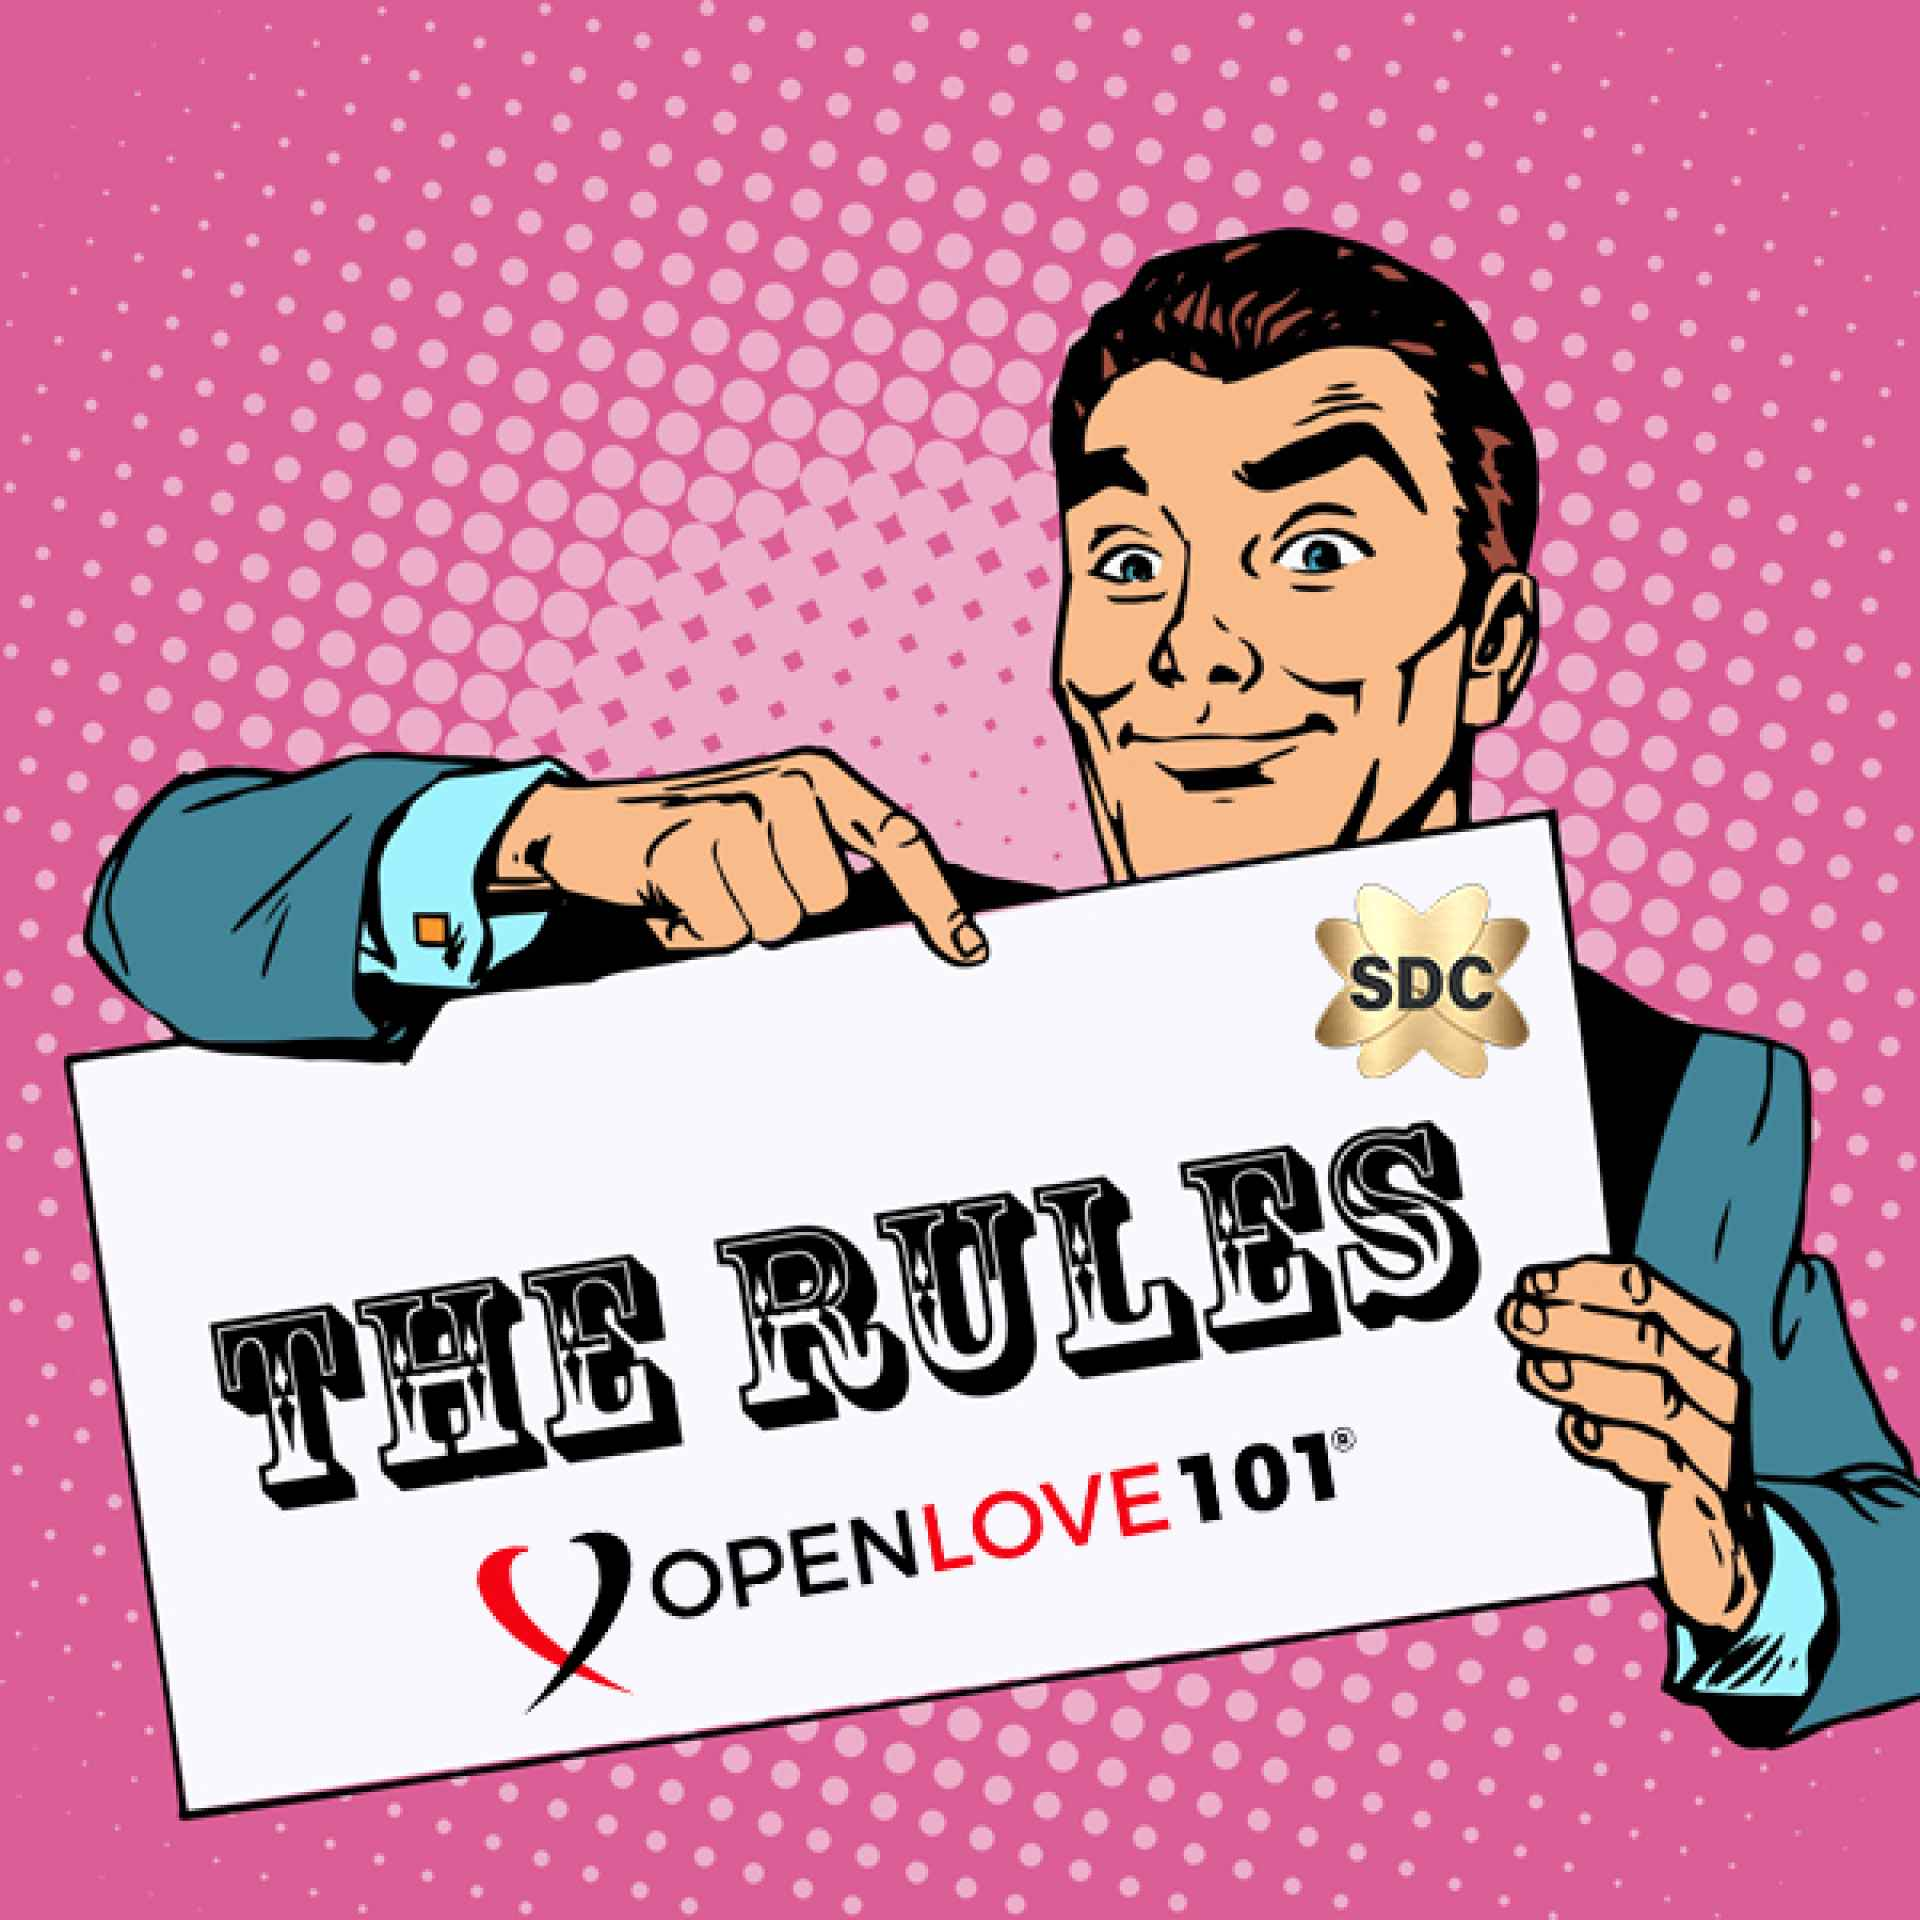 Openlove 101 SDC Newbie Lifestyle Club Guide Rules